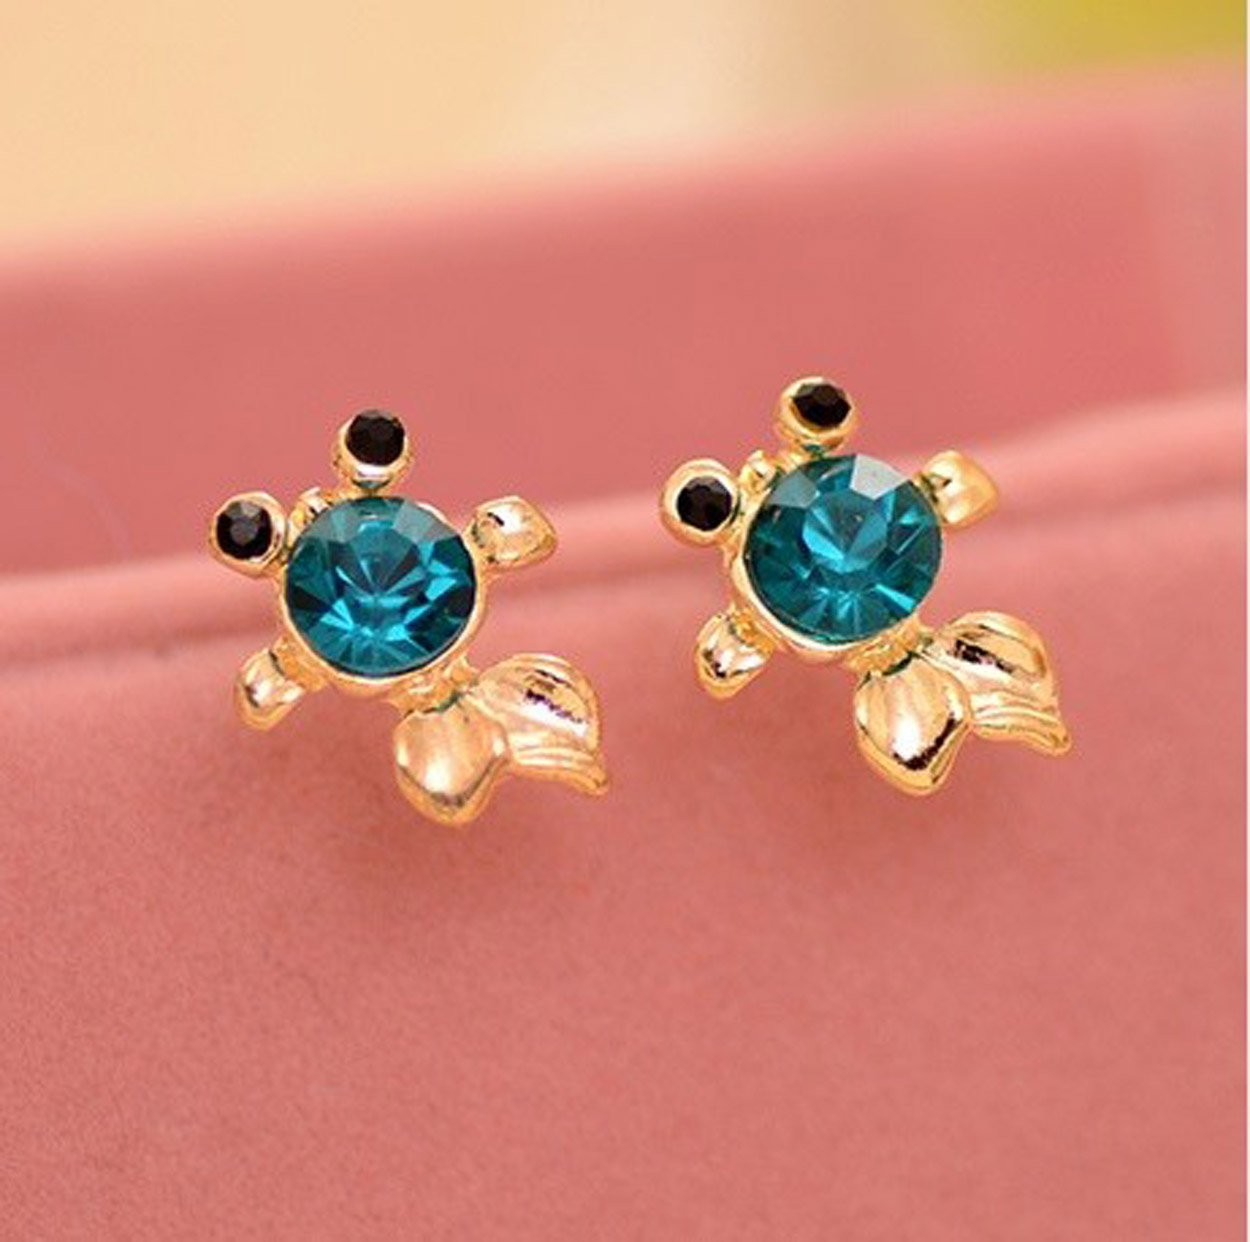 Blue Crystal Goldfish Stud Earrings Fashion Jewelry women ladies girls